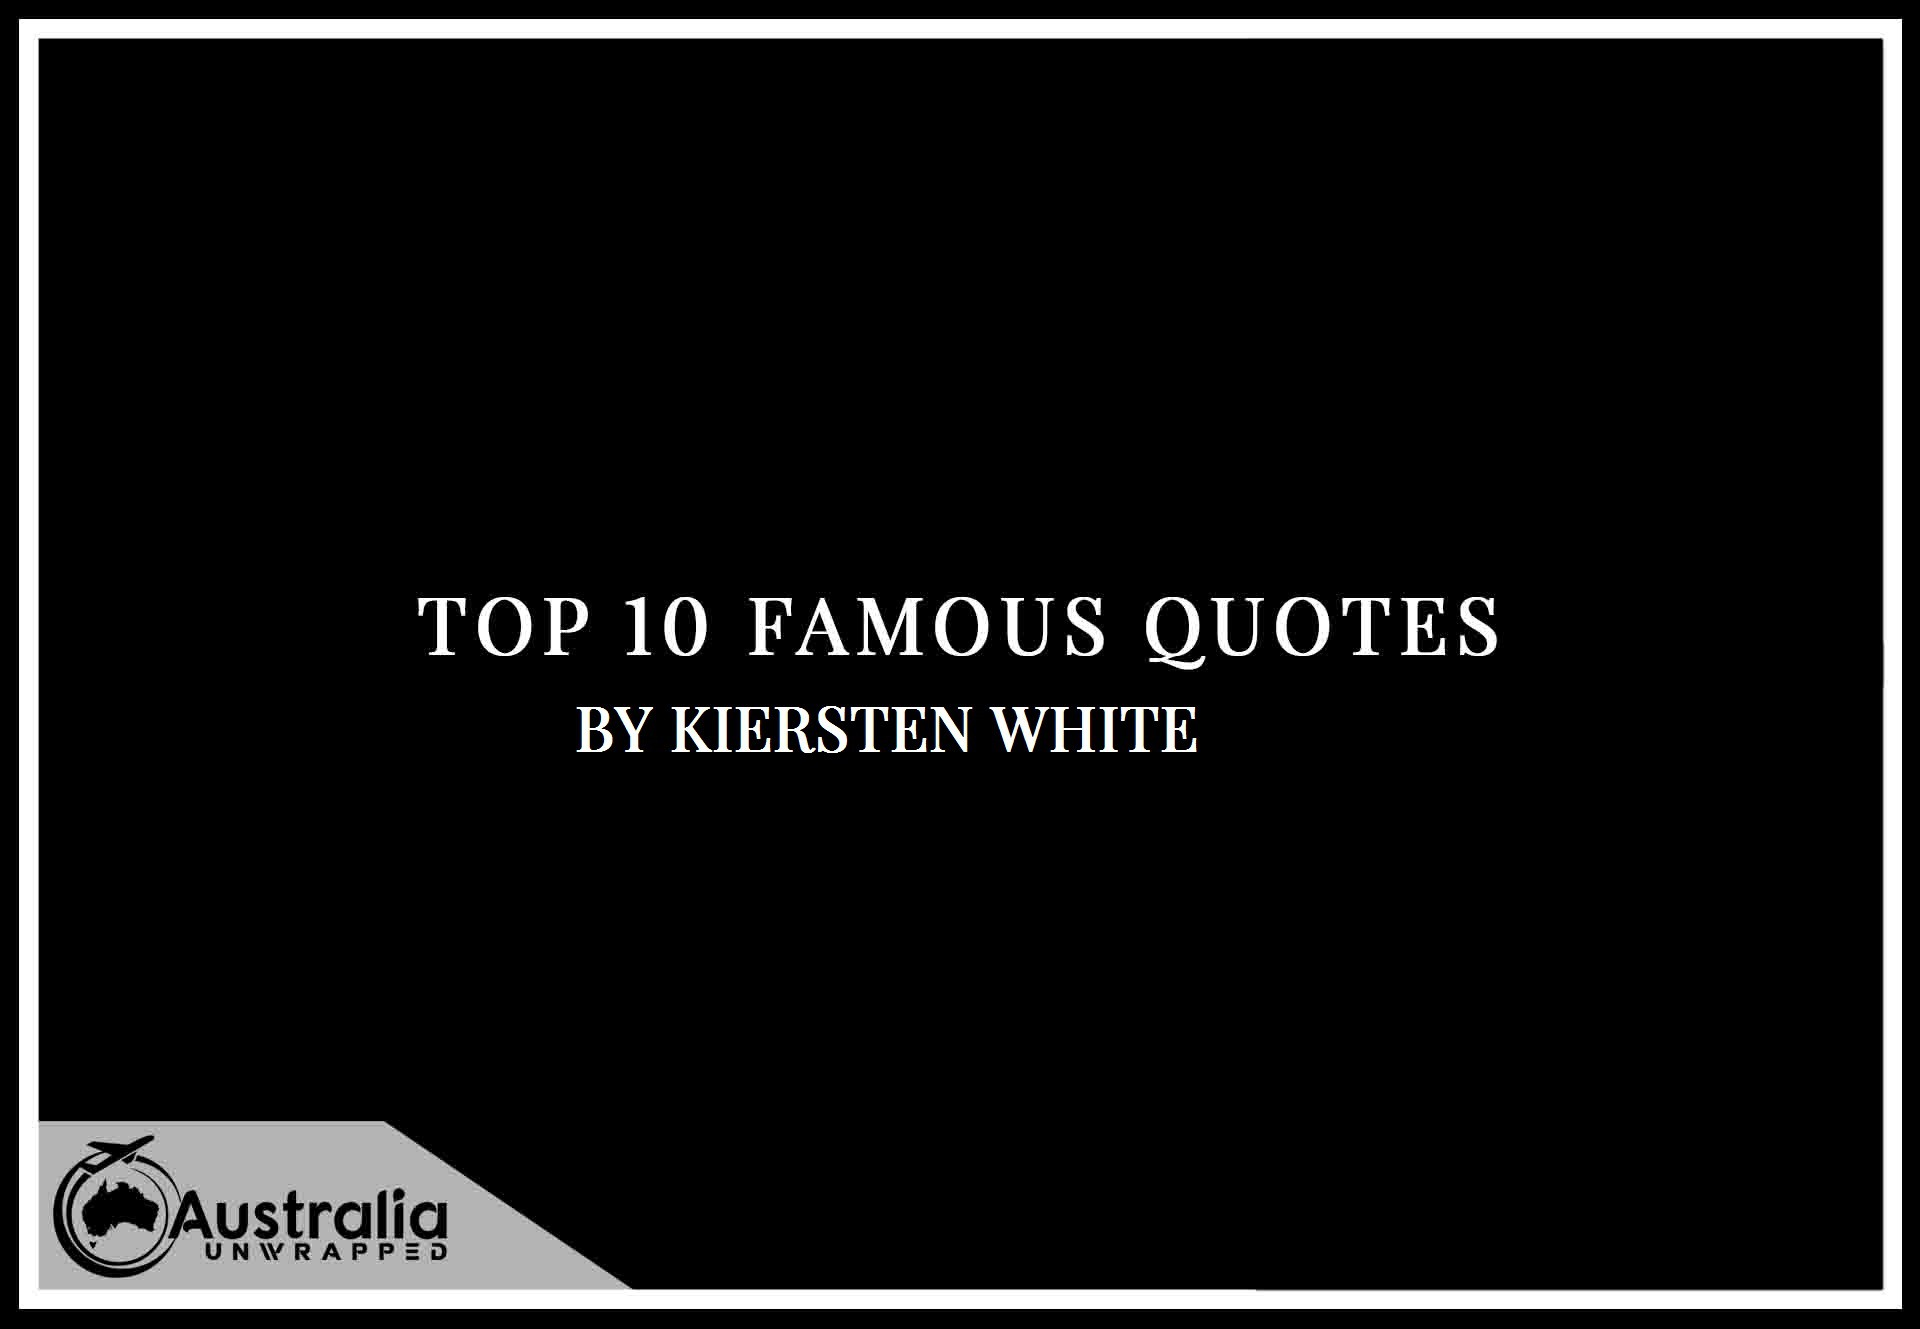 Kiersten White's Top 10 Popular and Famous Quotes